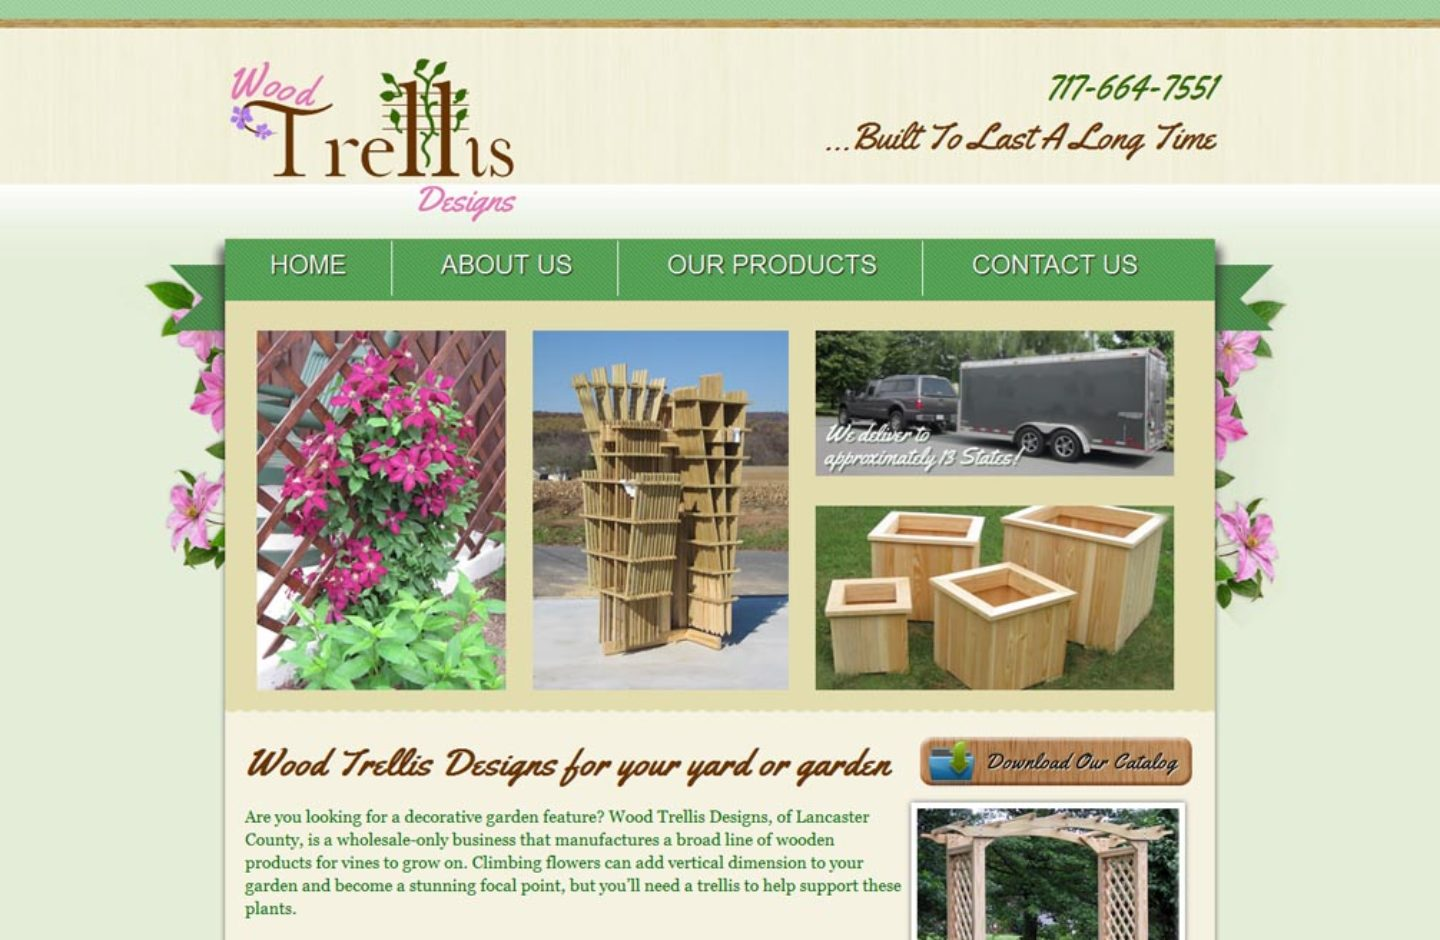 Wood Trellis Designs